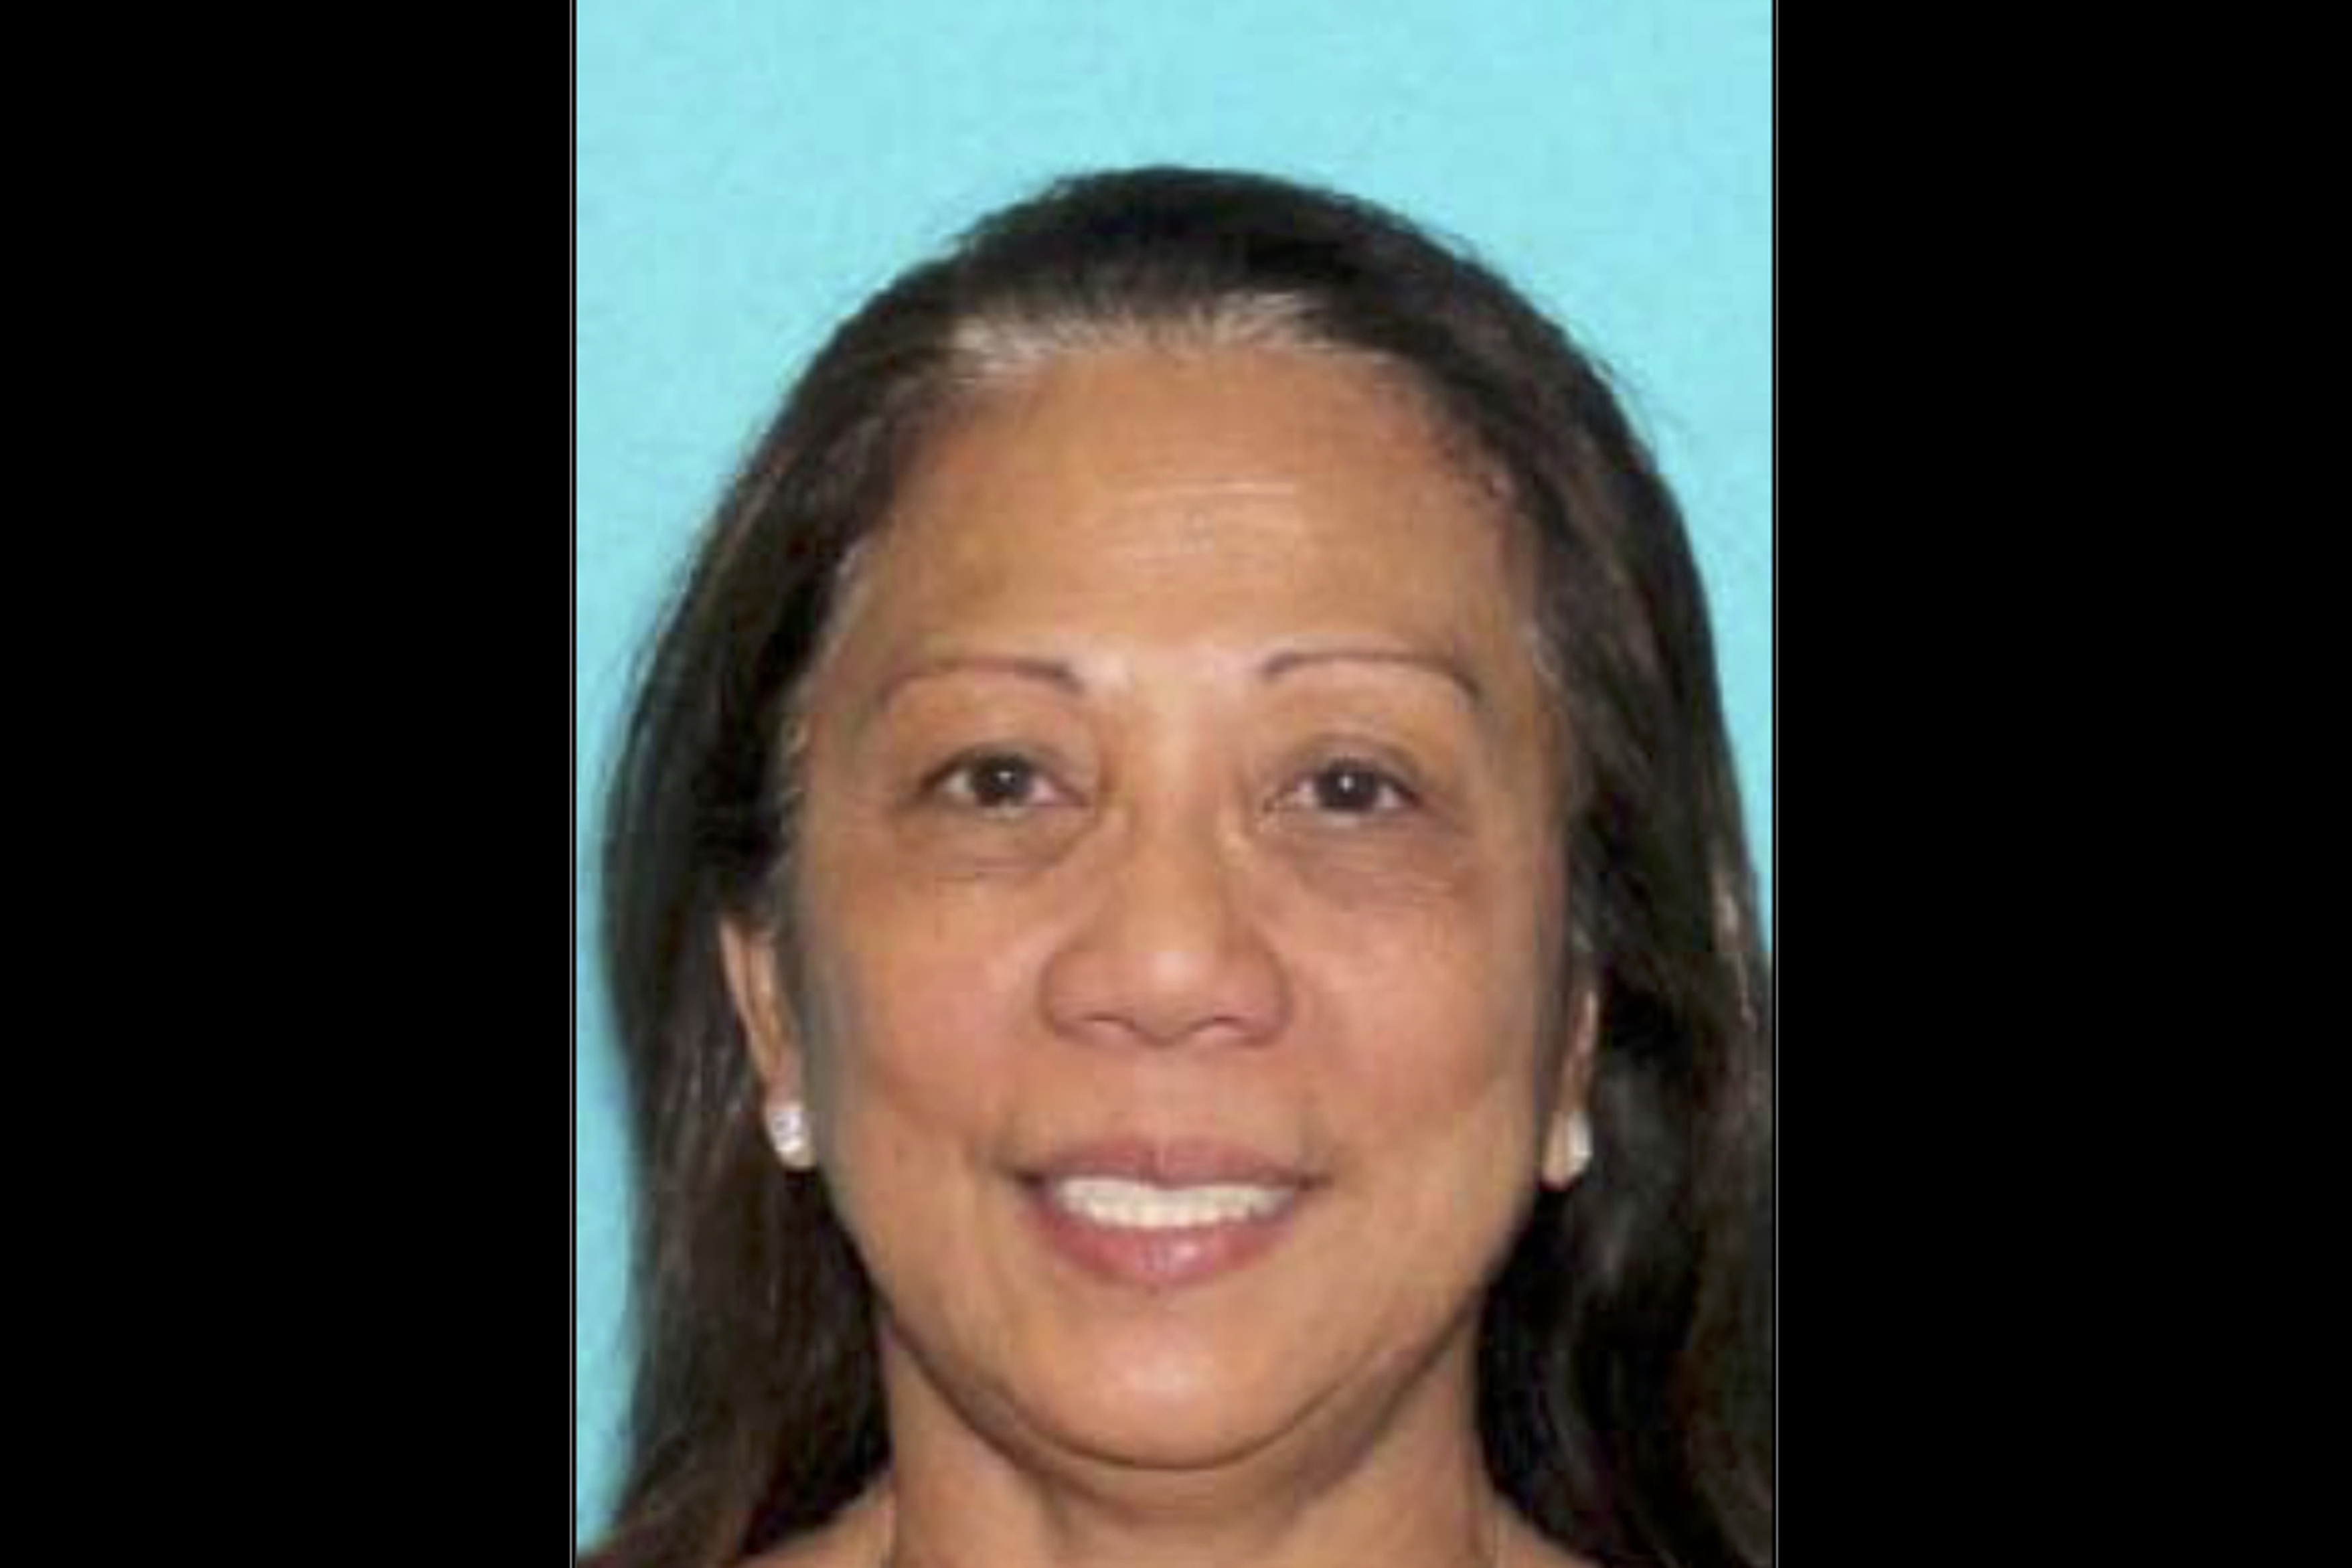 This undated photo provided by the Las Vegas Metropolitan Police Department shows Marilou Danley. Danley, 62, returned to the United States from the Philippines on Oct. 3, 2017, and was met at Los Angeles International Airport by FBI agents, accordin...